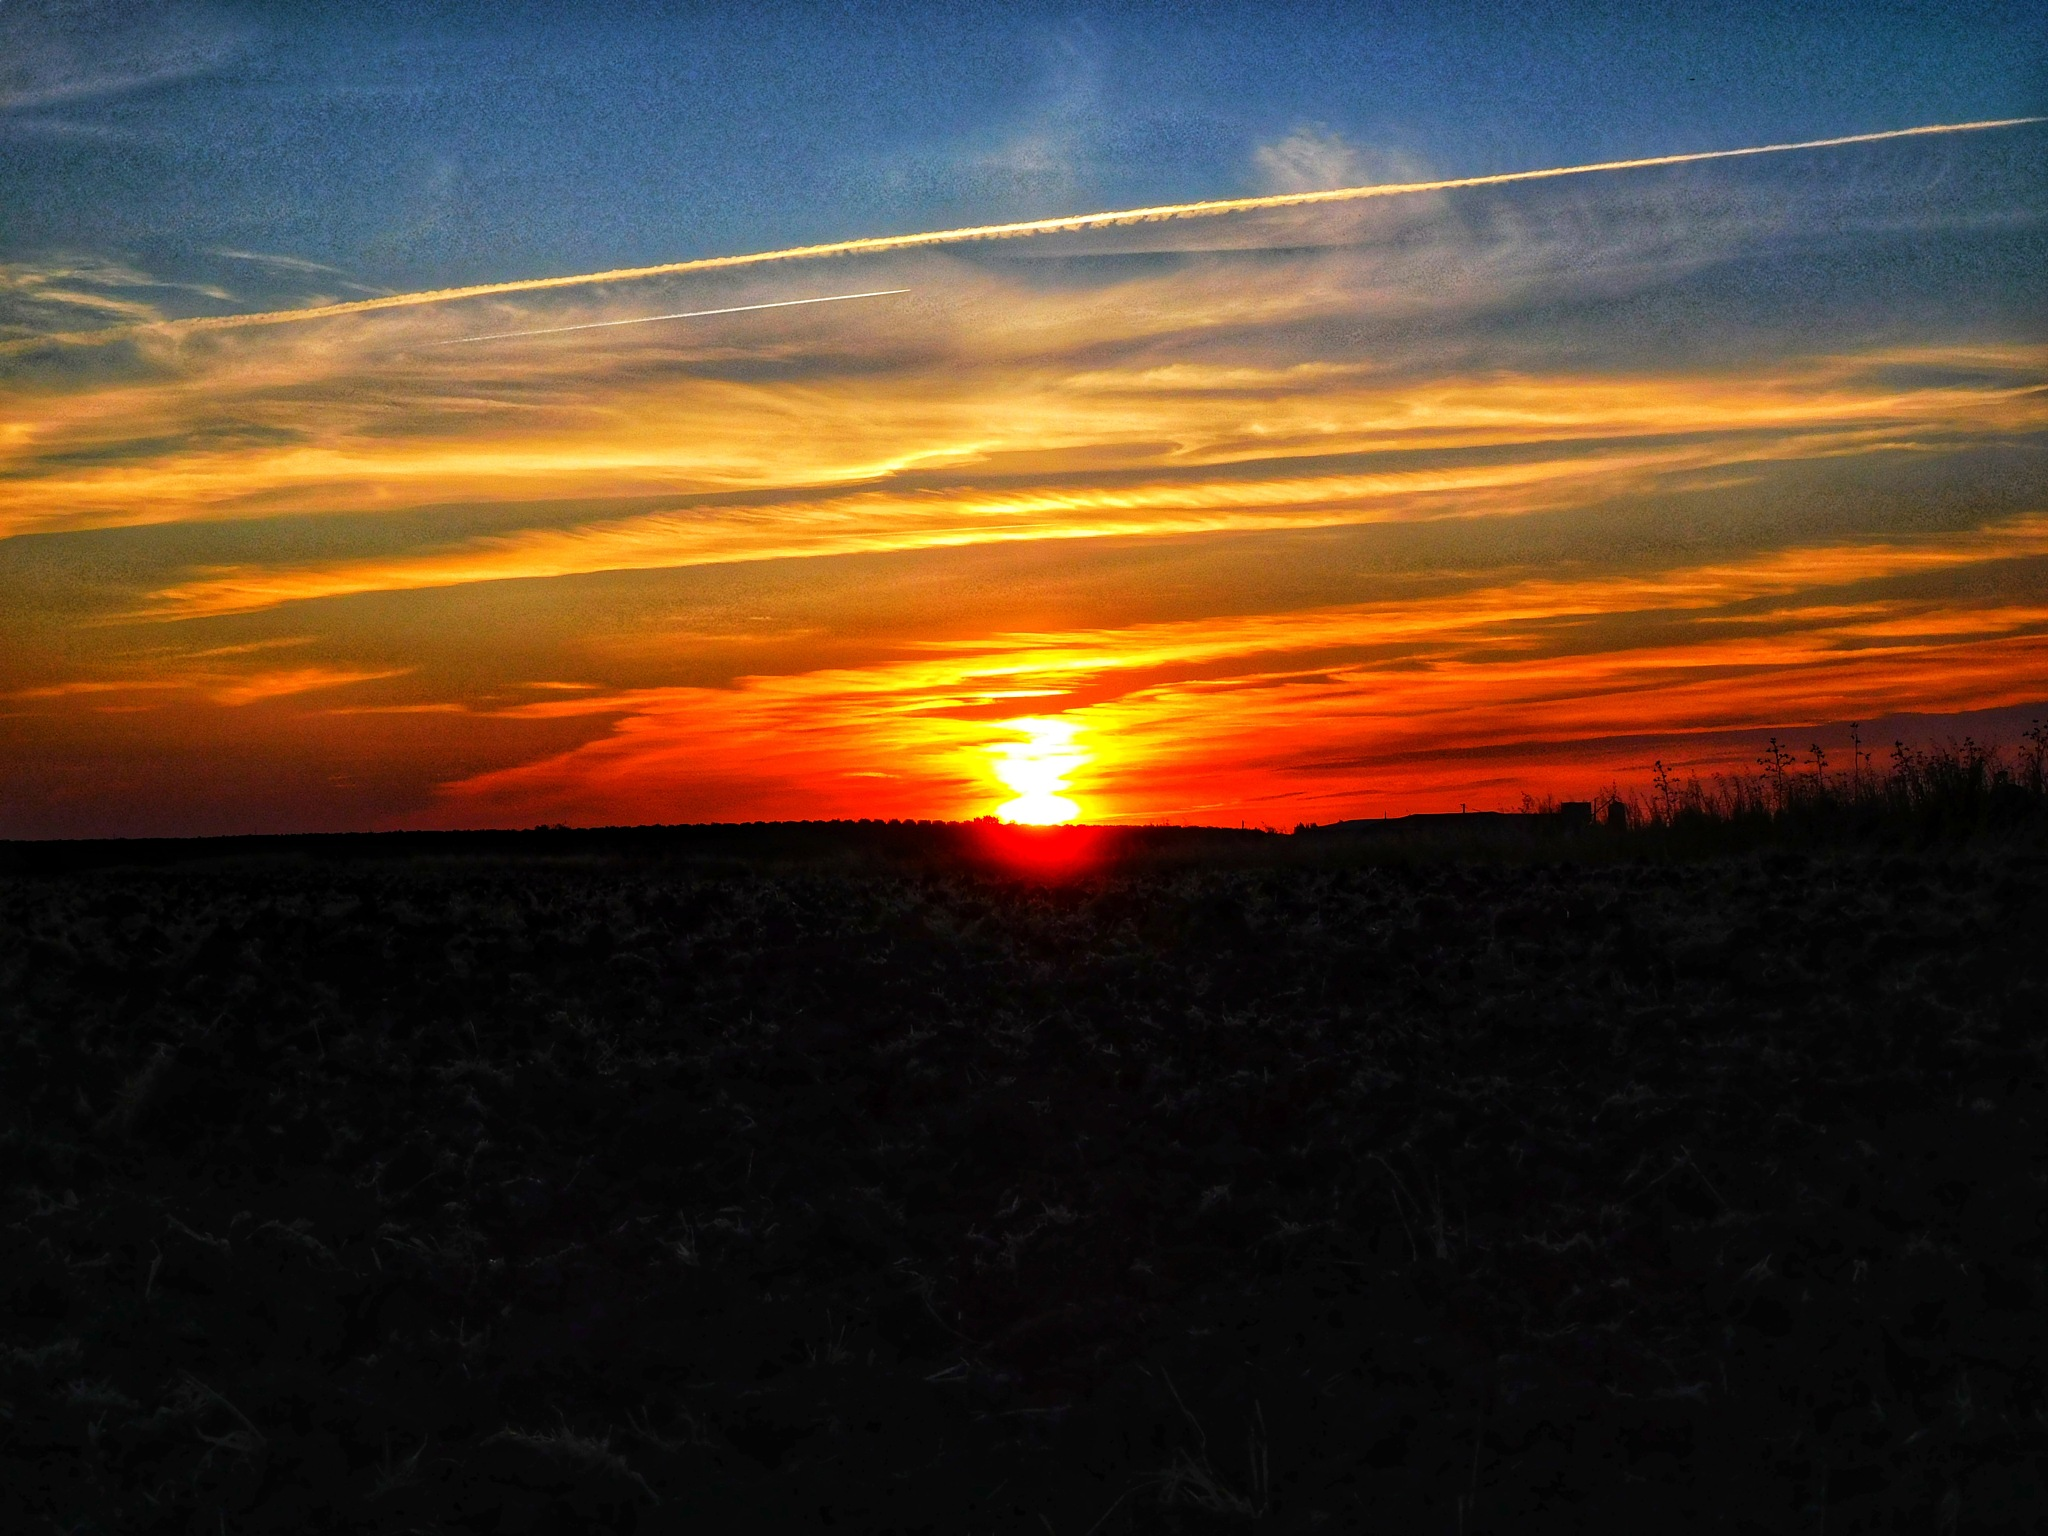 Sunset by Luso